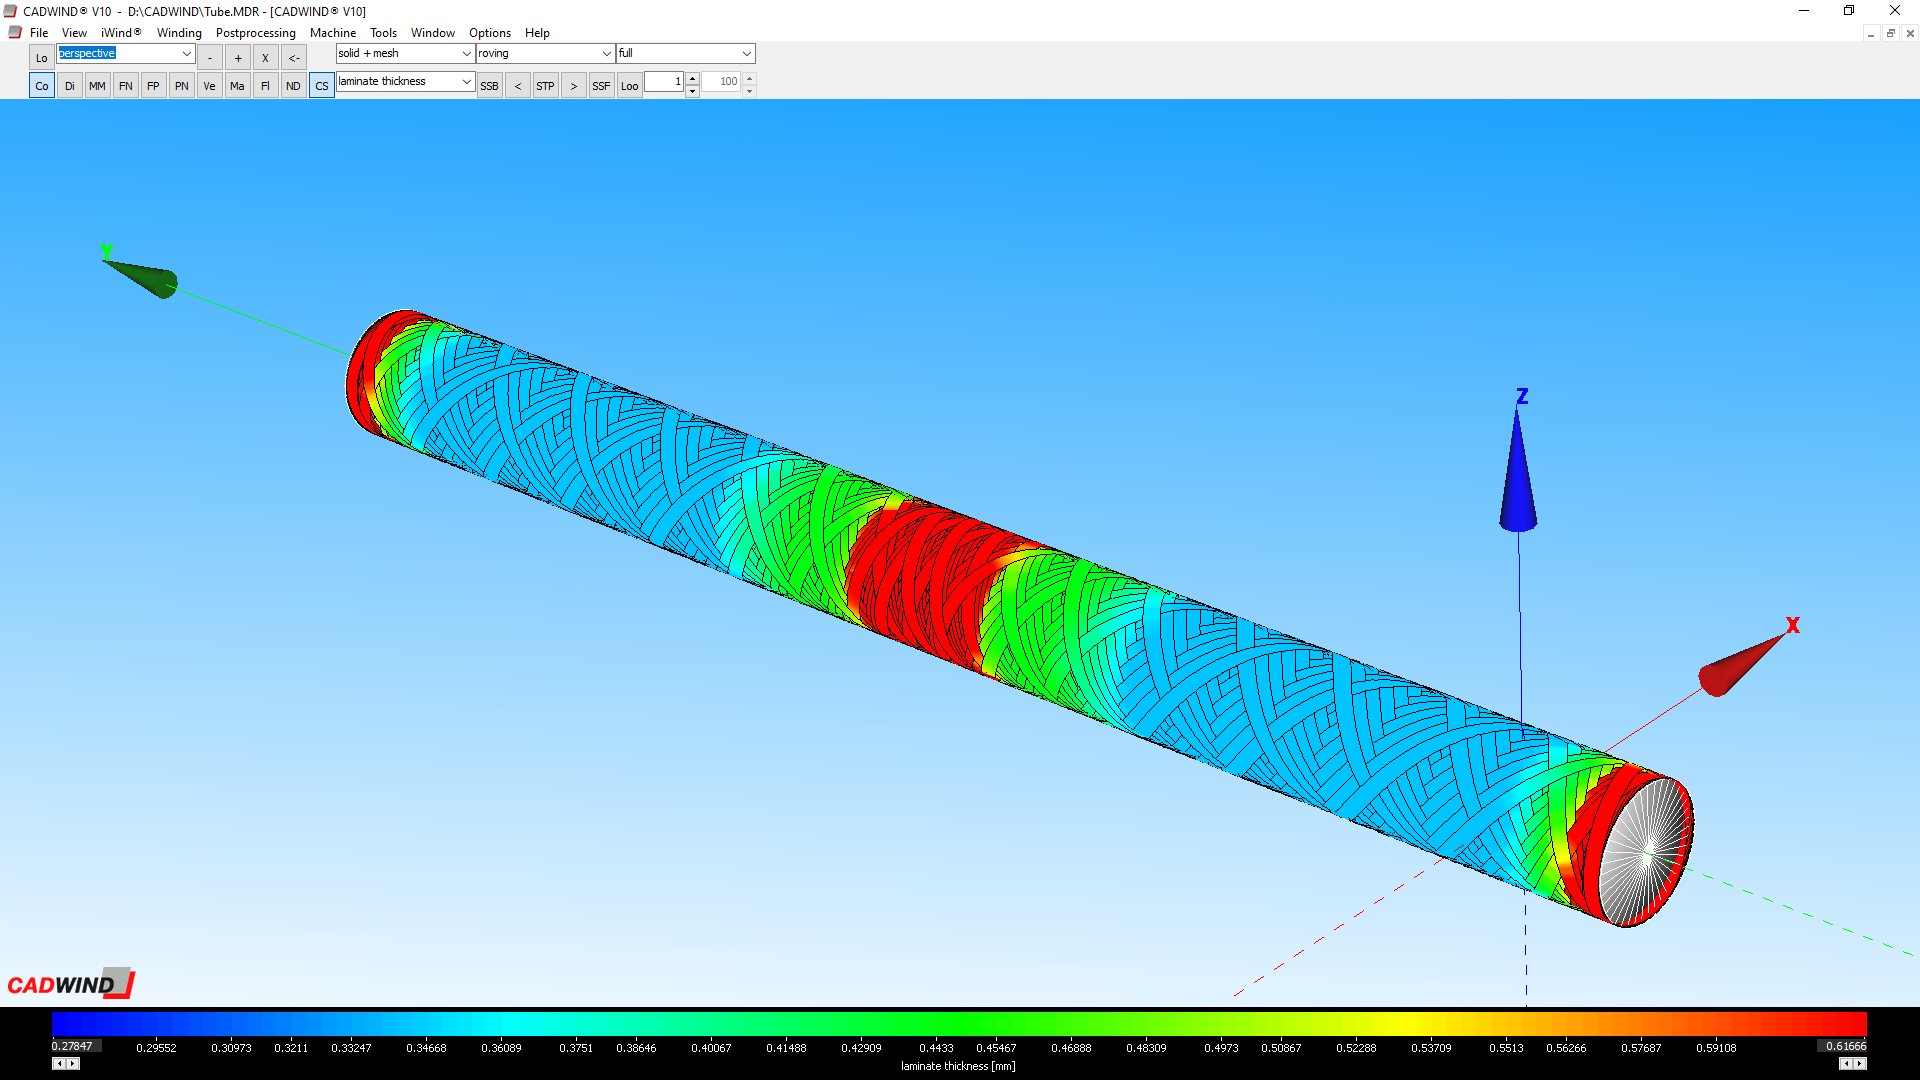 CADWIND friction modelling